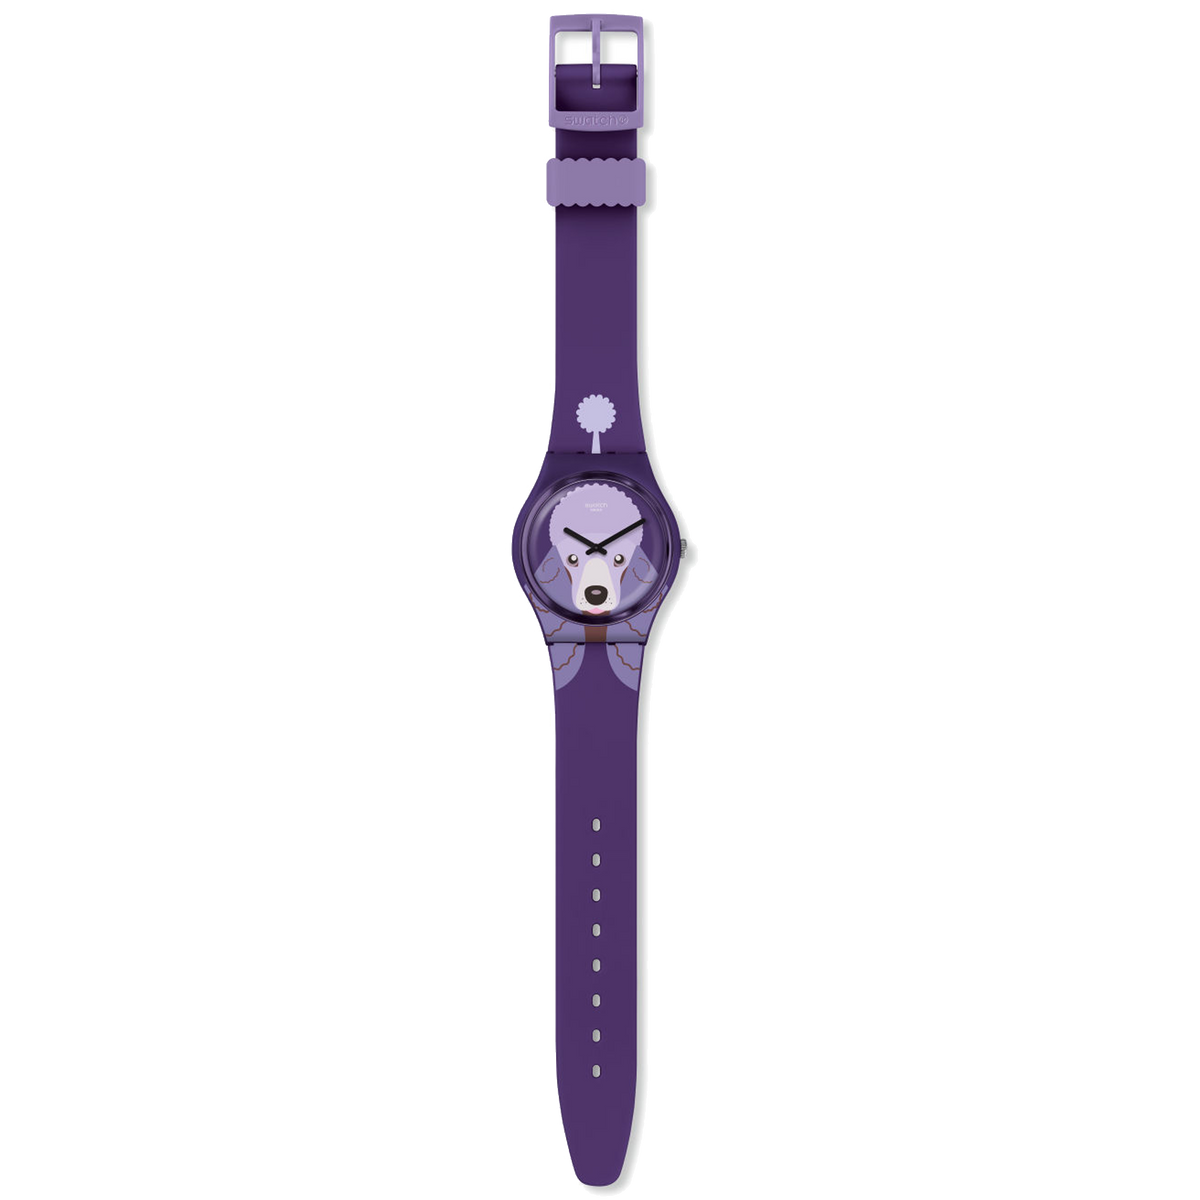 Swatch Watch 34mm - Purple Poodle